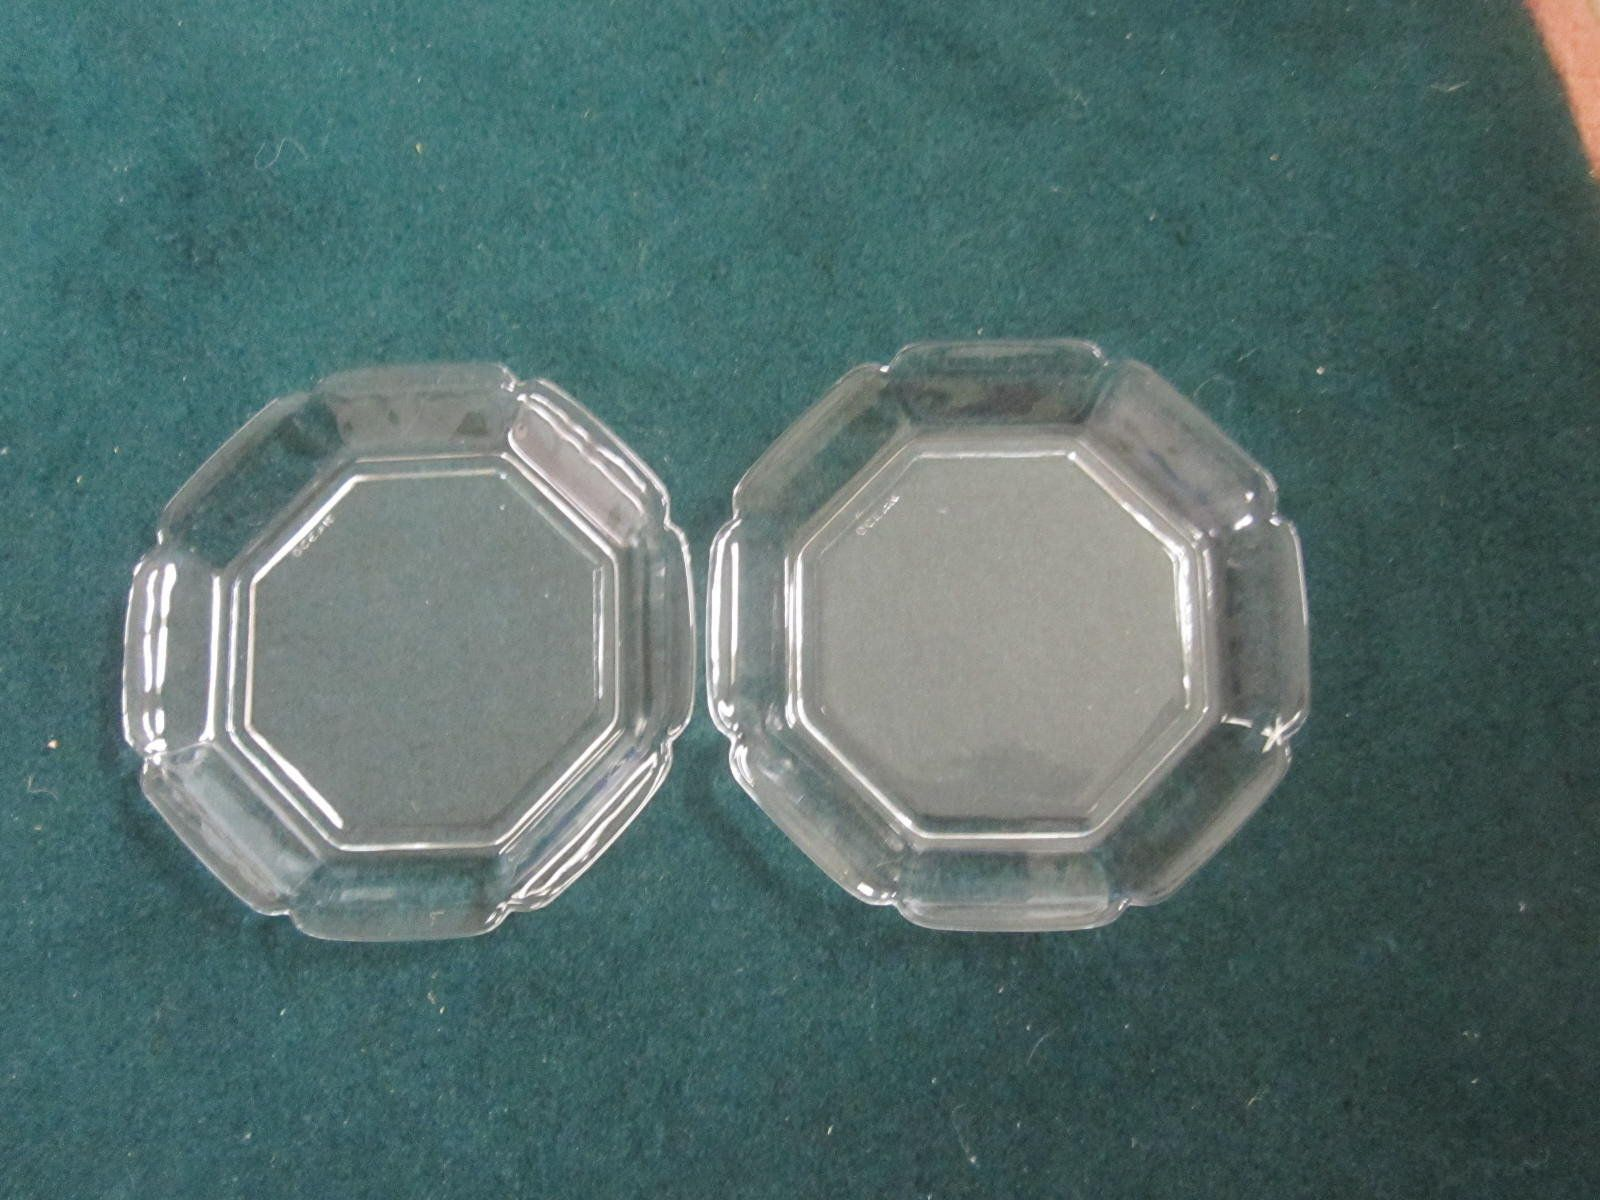 Vintage 80 S Lot Of Two Unique Clear Glass Plates By Ocean Small Scalloped Edge Plates Elegant Octagon Clear Gla Clear Glass Plates Glass Plates Clear Glass